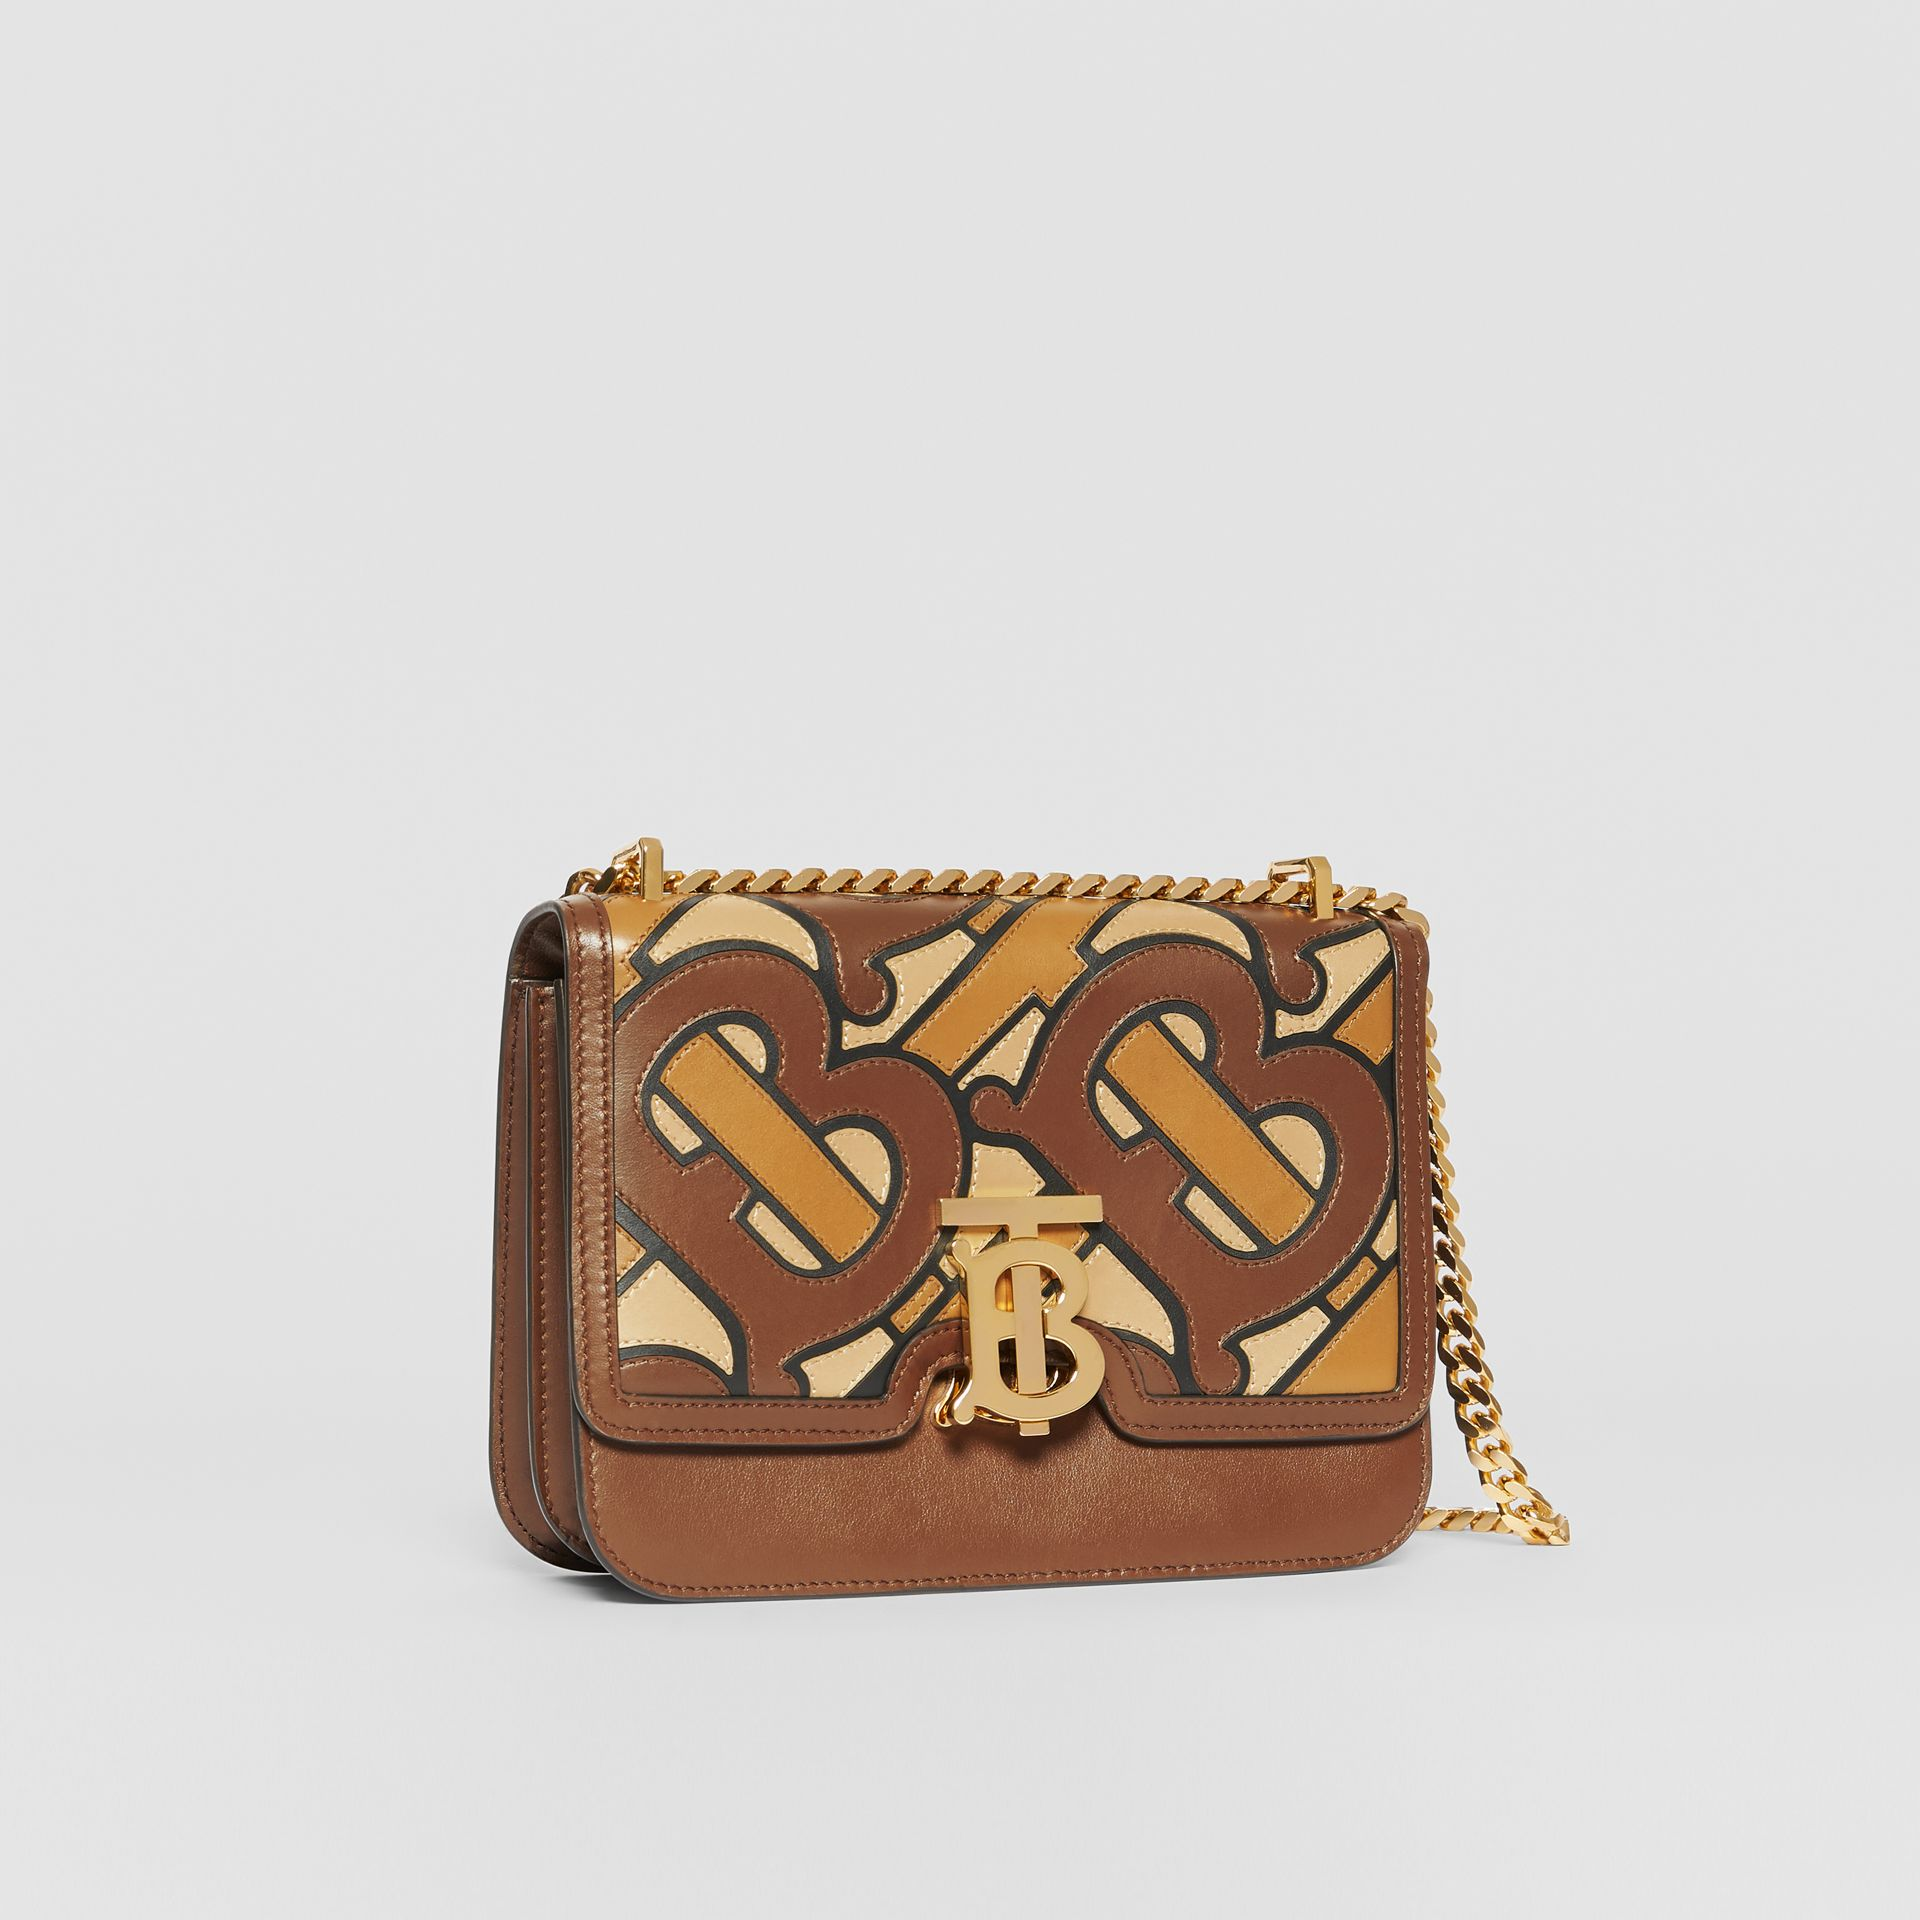 Small Monogram Appliqué Leather TB Bag in Brown - Women | Burberry - gallery image 6